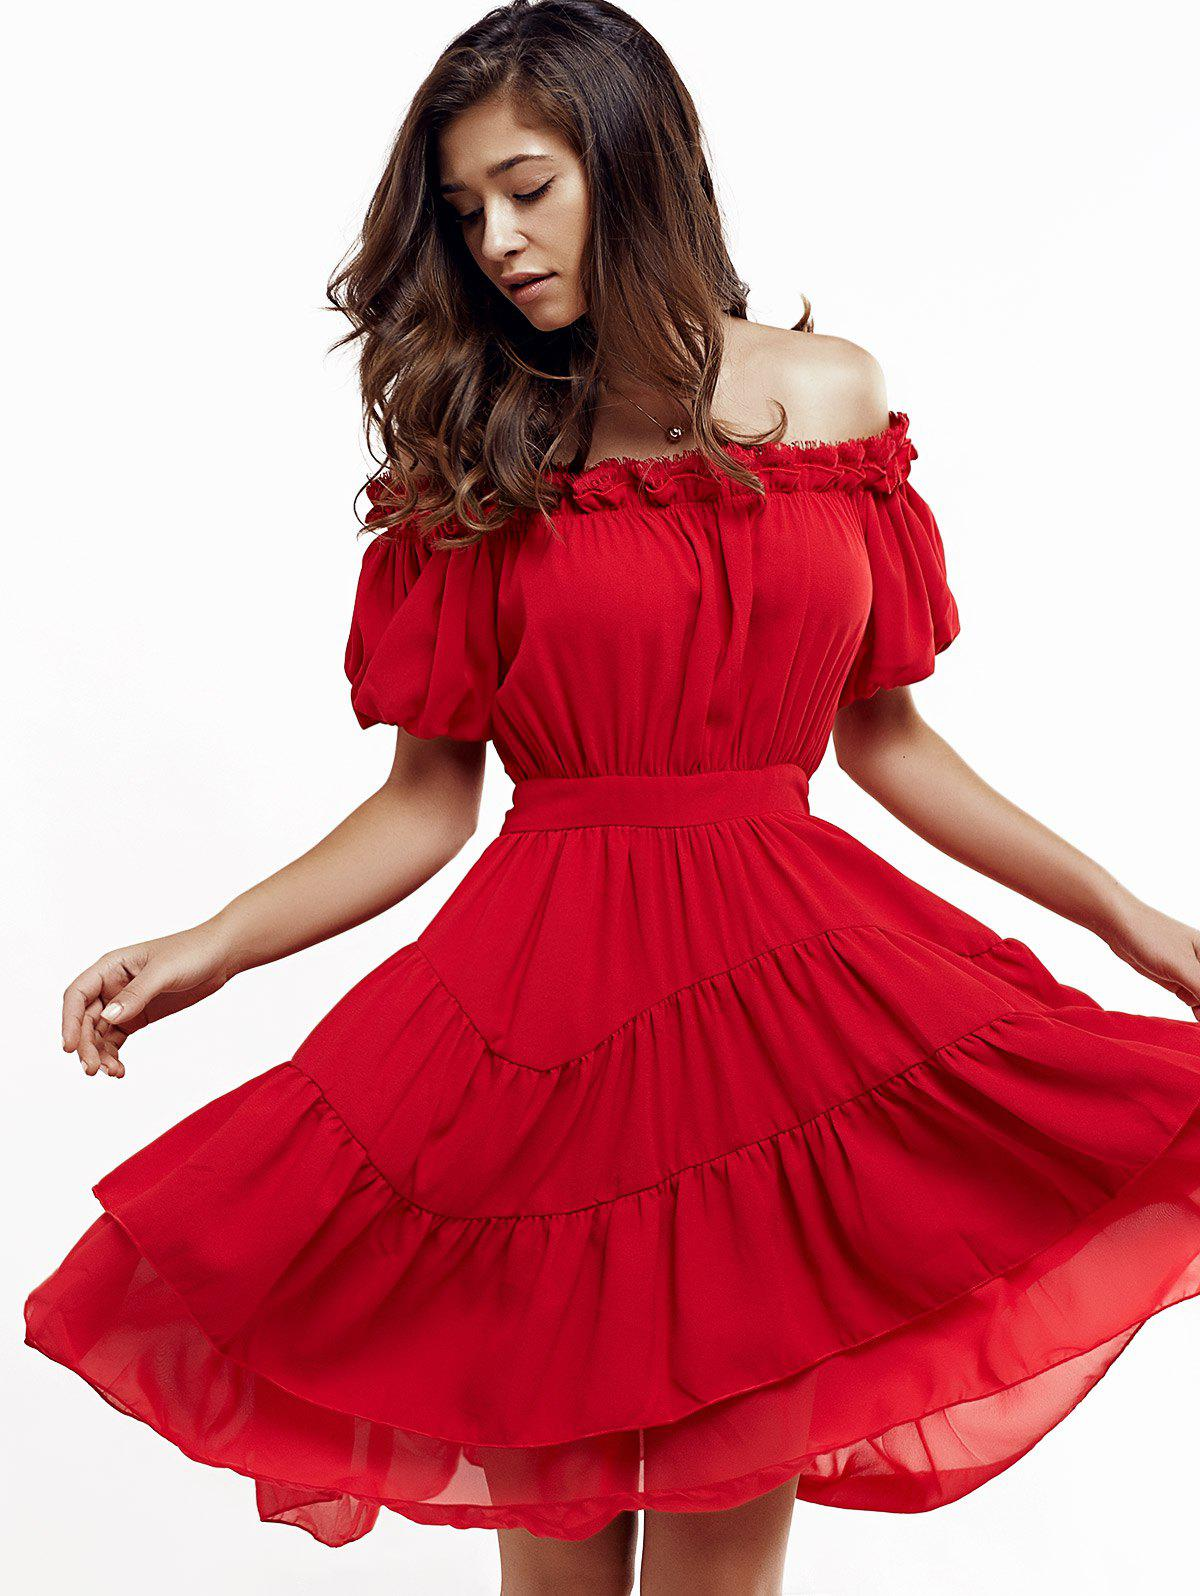 Short Off The Shoulder Puff Sleeve Tiered Dress - RED XL